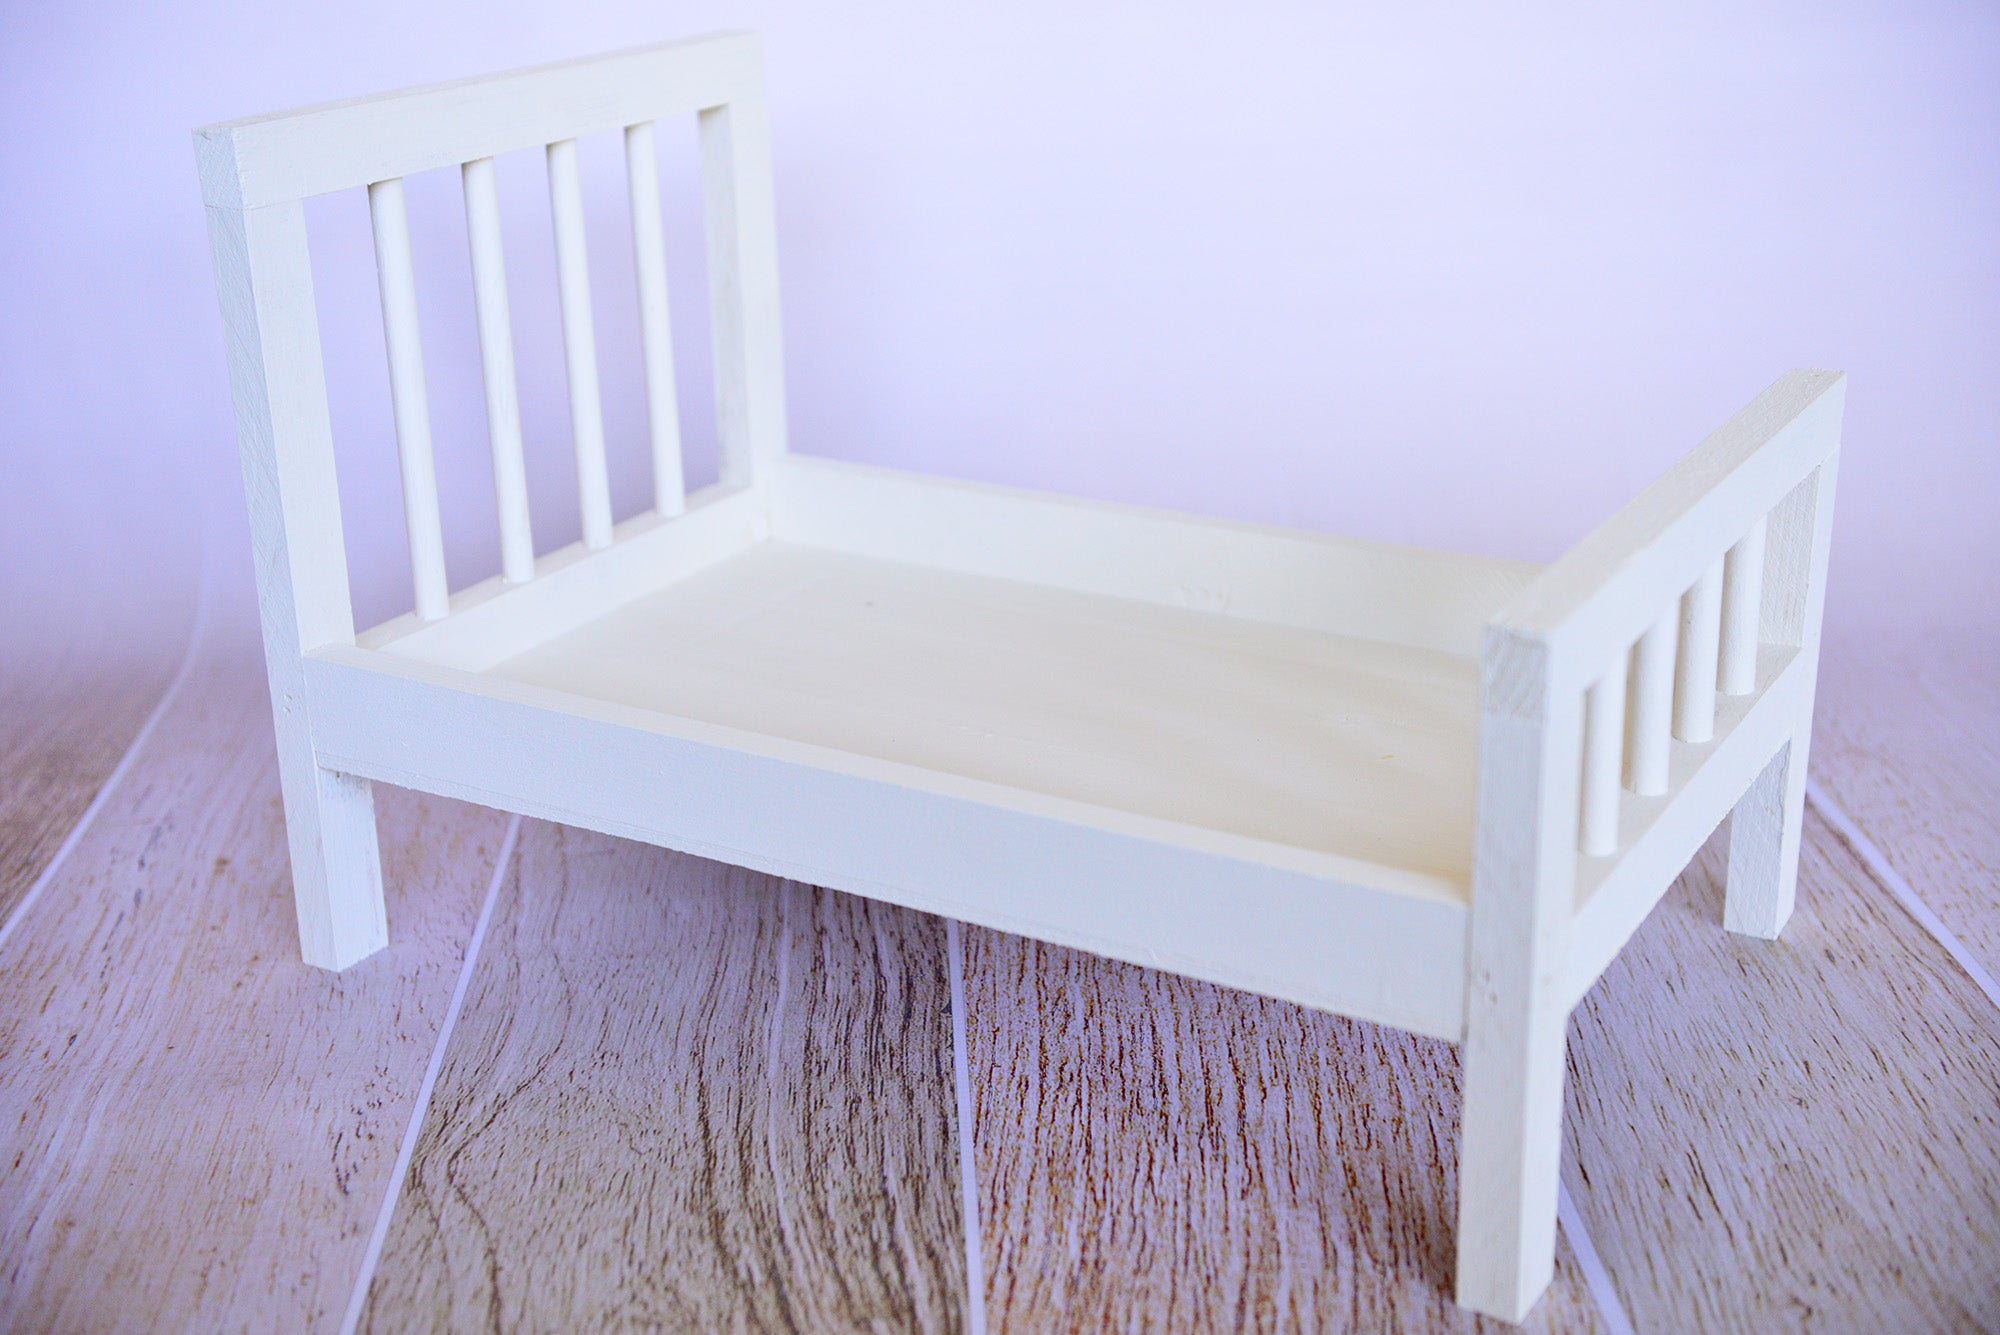 Rustic Bed - Straight Headboard with Spindles - White